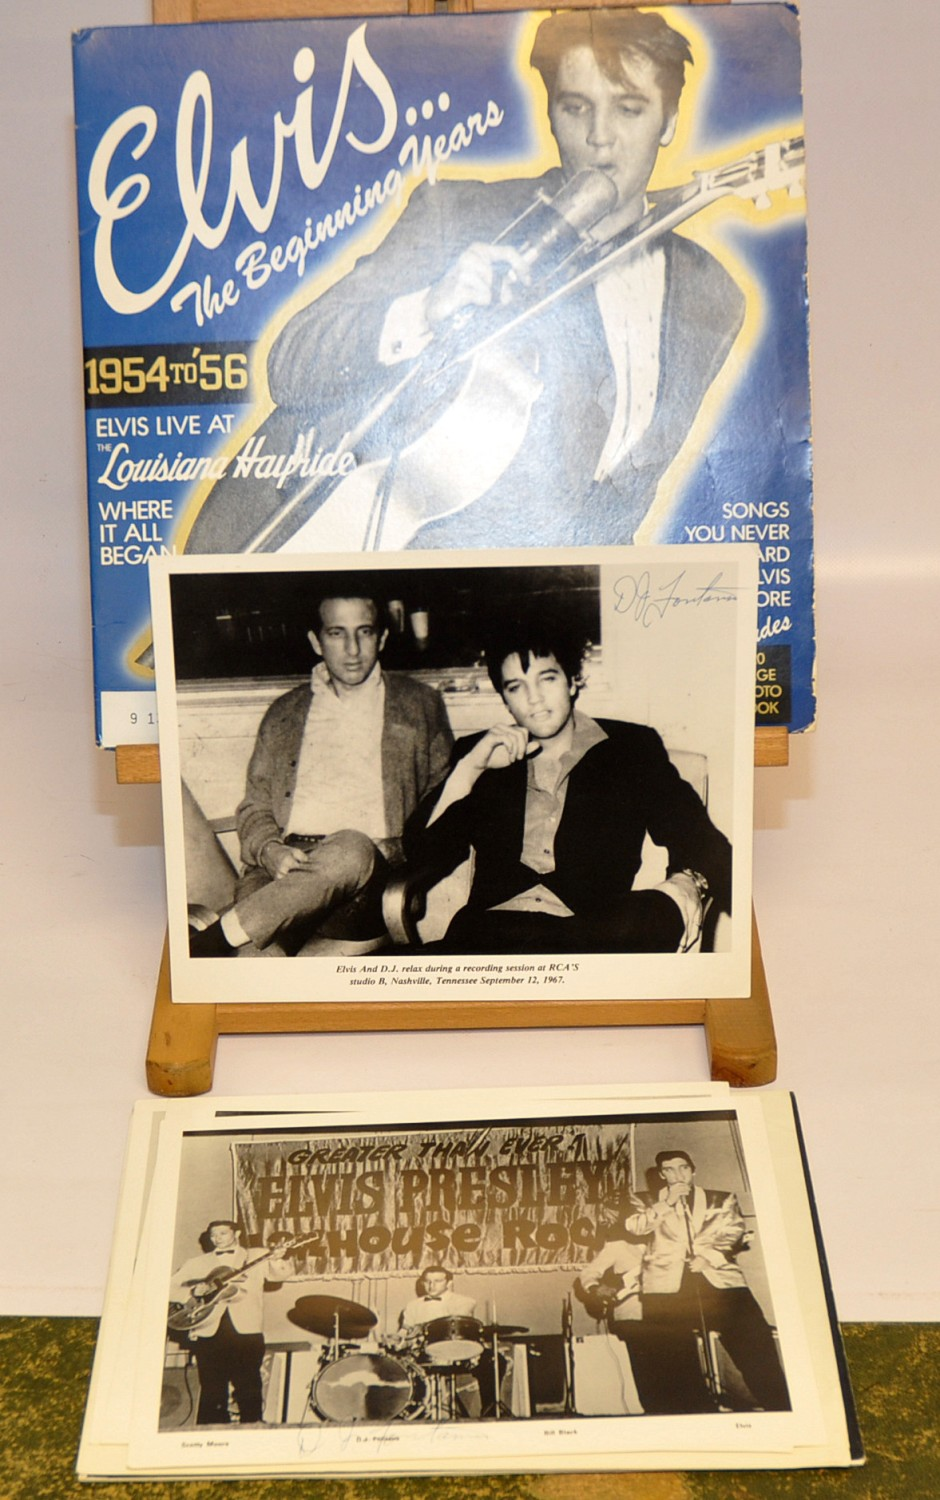 Lot 16 - `ELVIS THE BEGINNING YEARS`. LP INCLUDING PHOTOBOOK SIGNED BY D.J. FONTANA PLUS 4 PHOTOS SIGNED BY